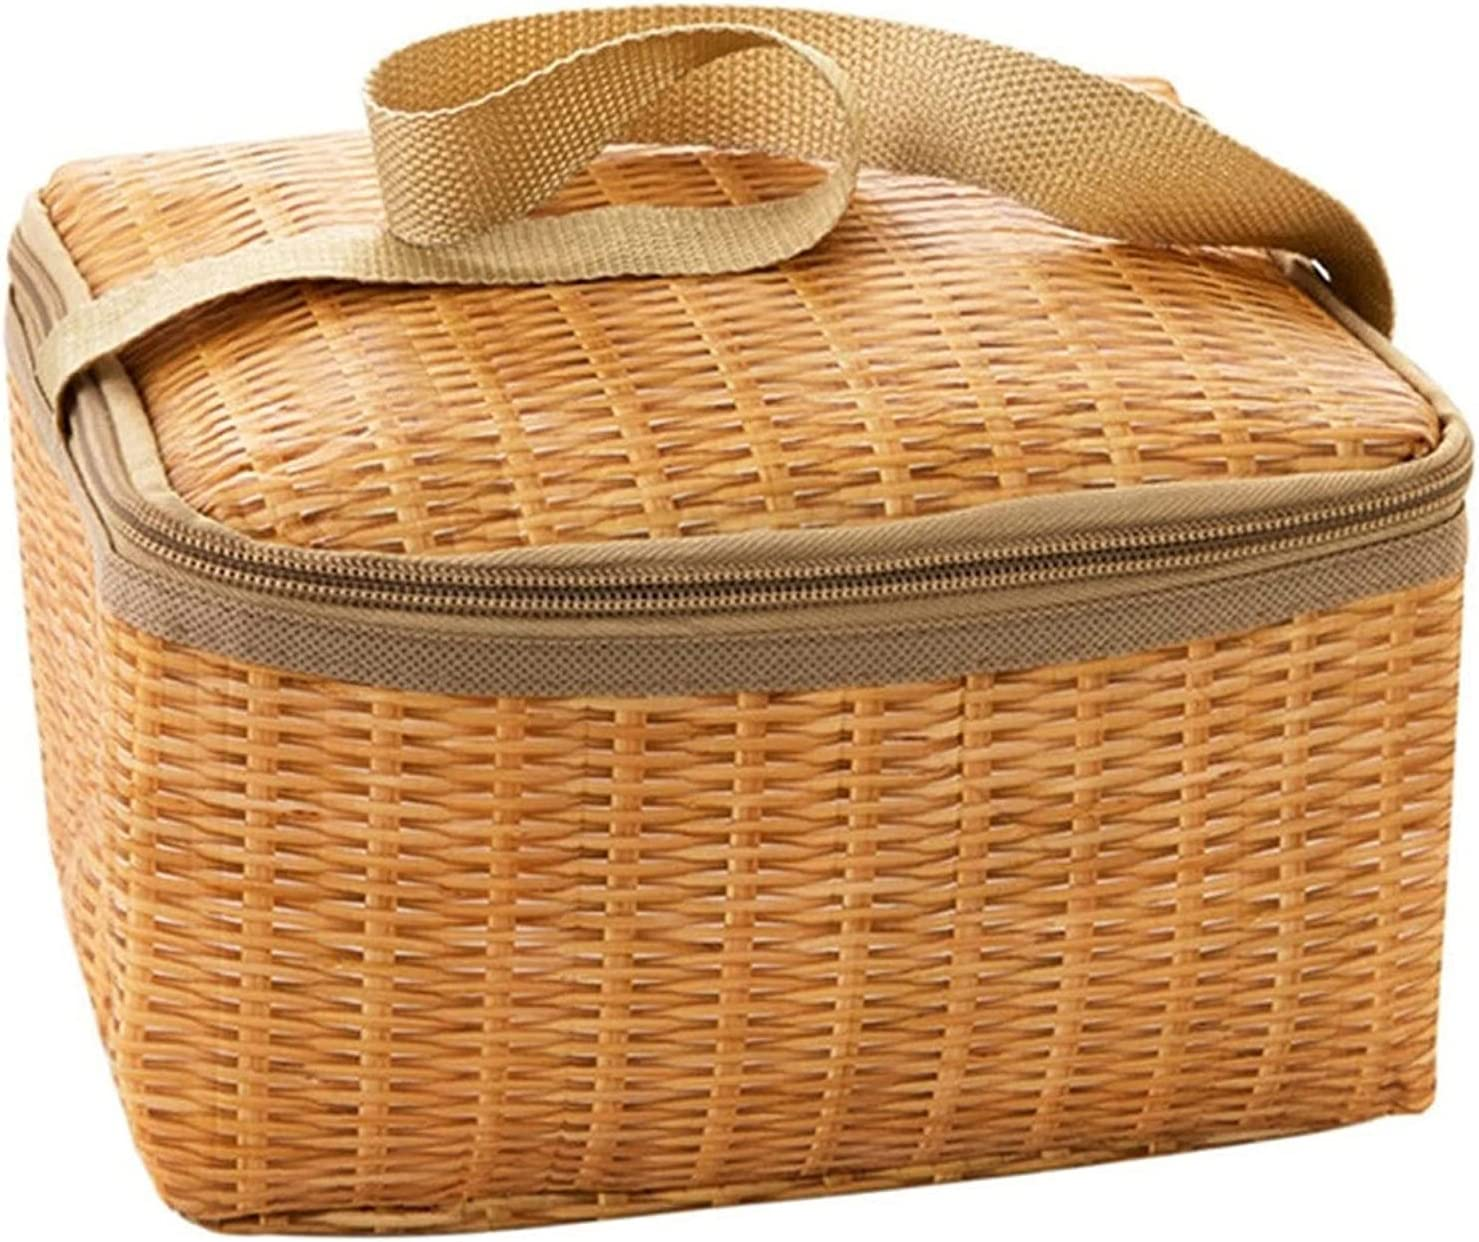 Reusable Lunch Bag Portable NEW before selling Wicker Tab Picnic Superior Outdoor Rattan